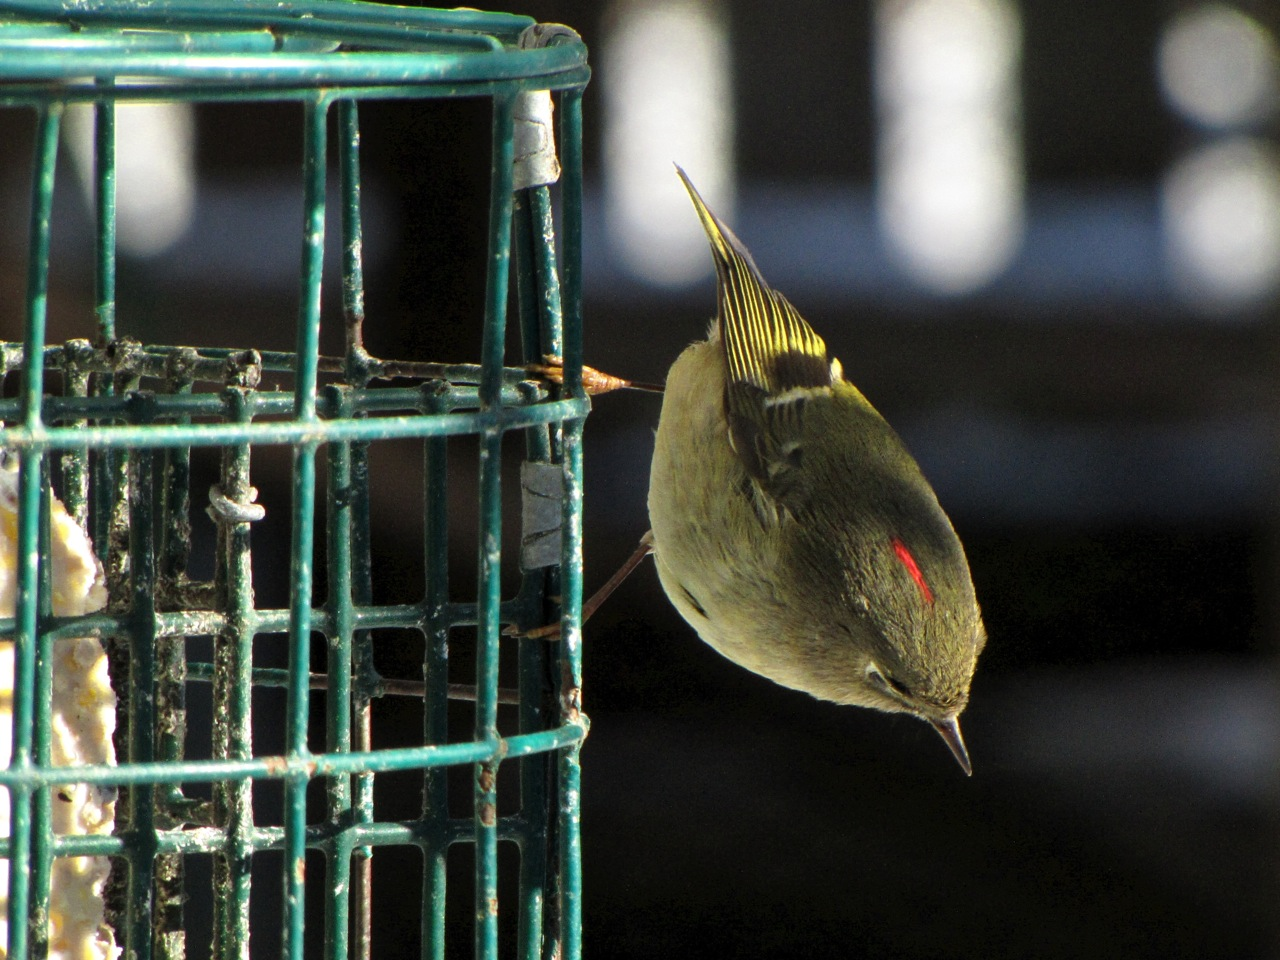 Ruby Crowned Kinglet photograph provided by Don Willott